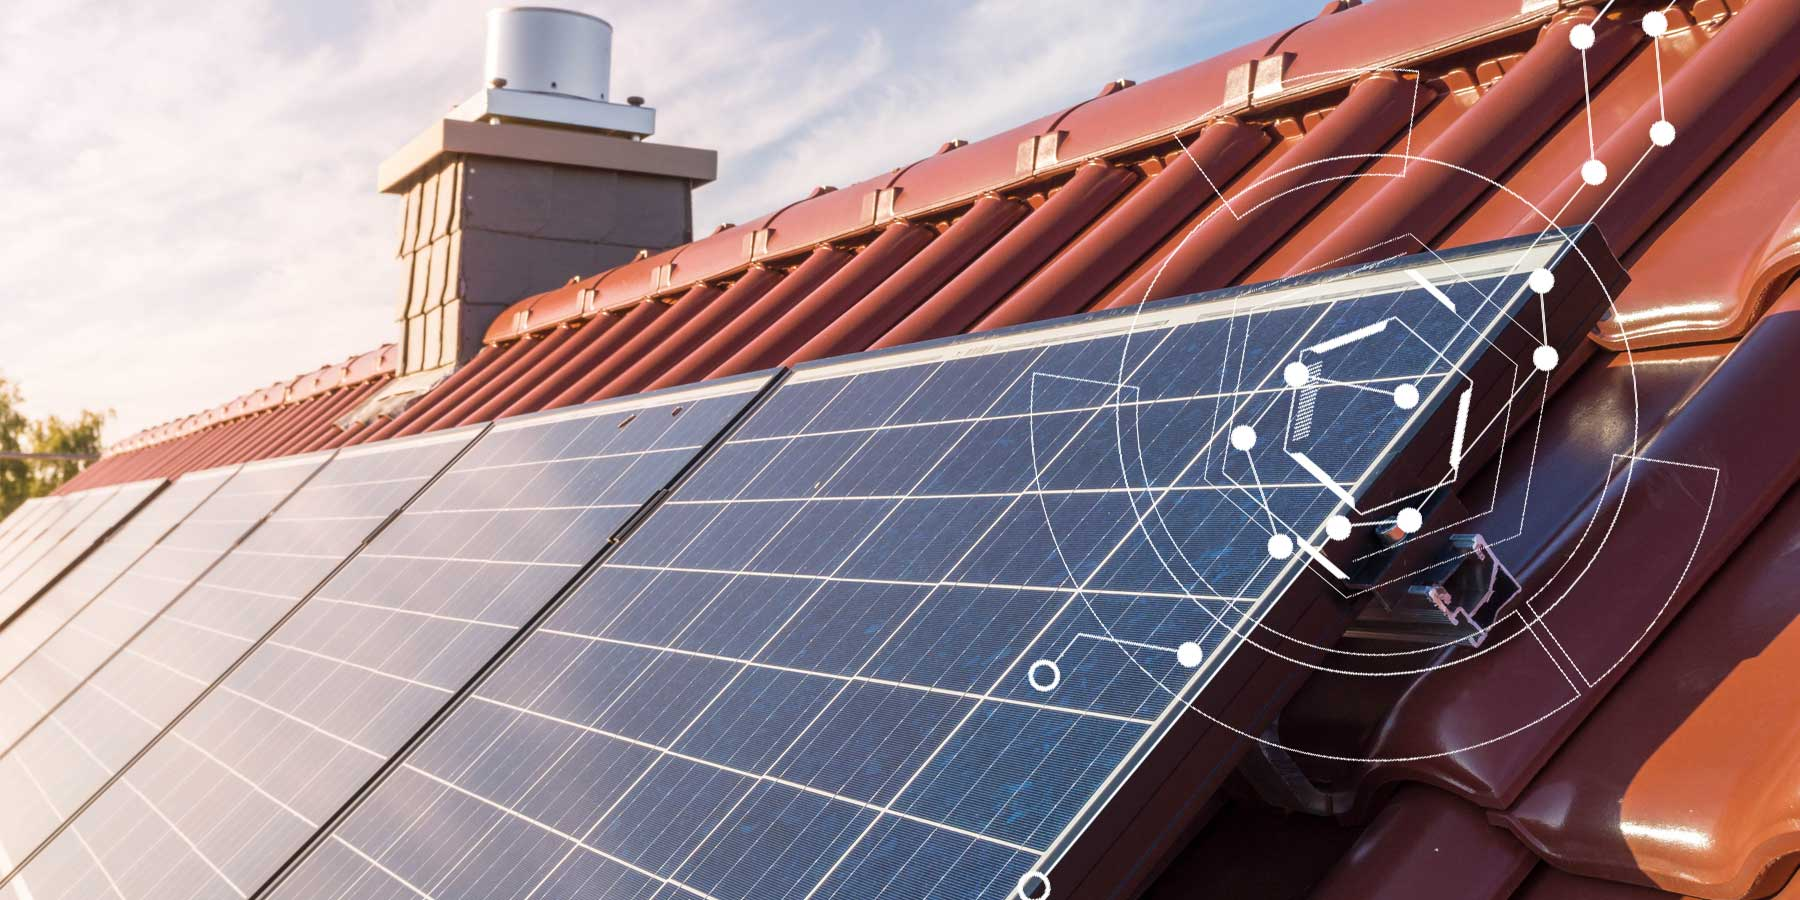 THINGS YOU DIDN'T KNOW ABOUT SOLAR PANELS